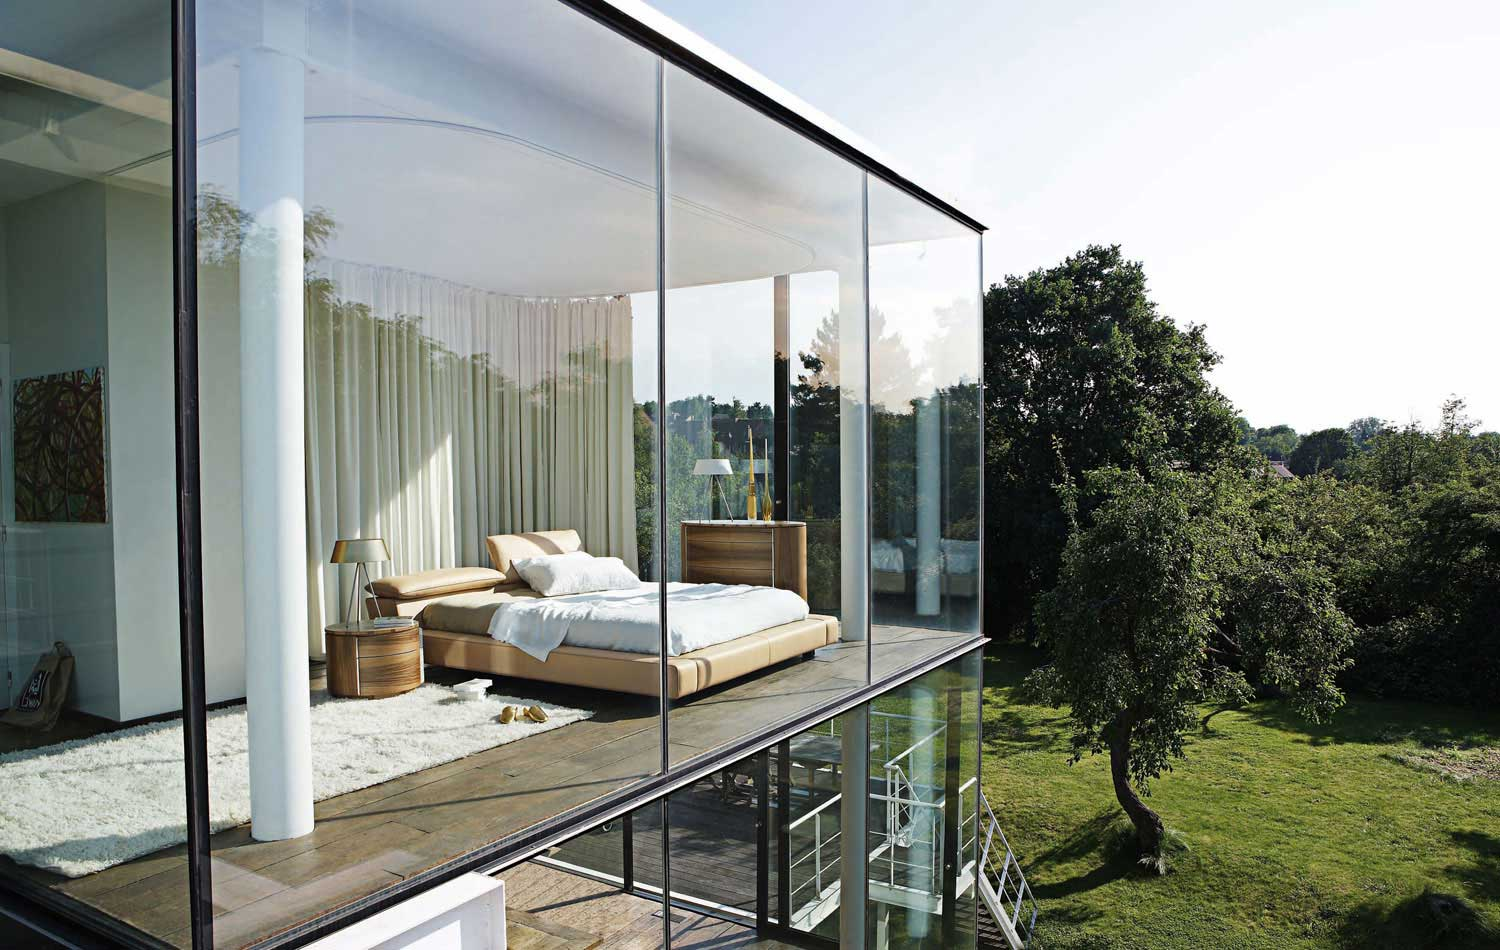 The Greatest Selection of Bedrooms With FloortoCeiling